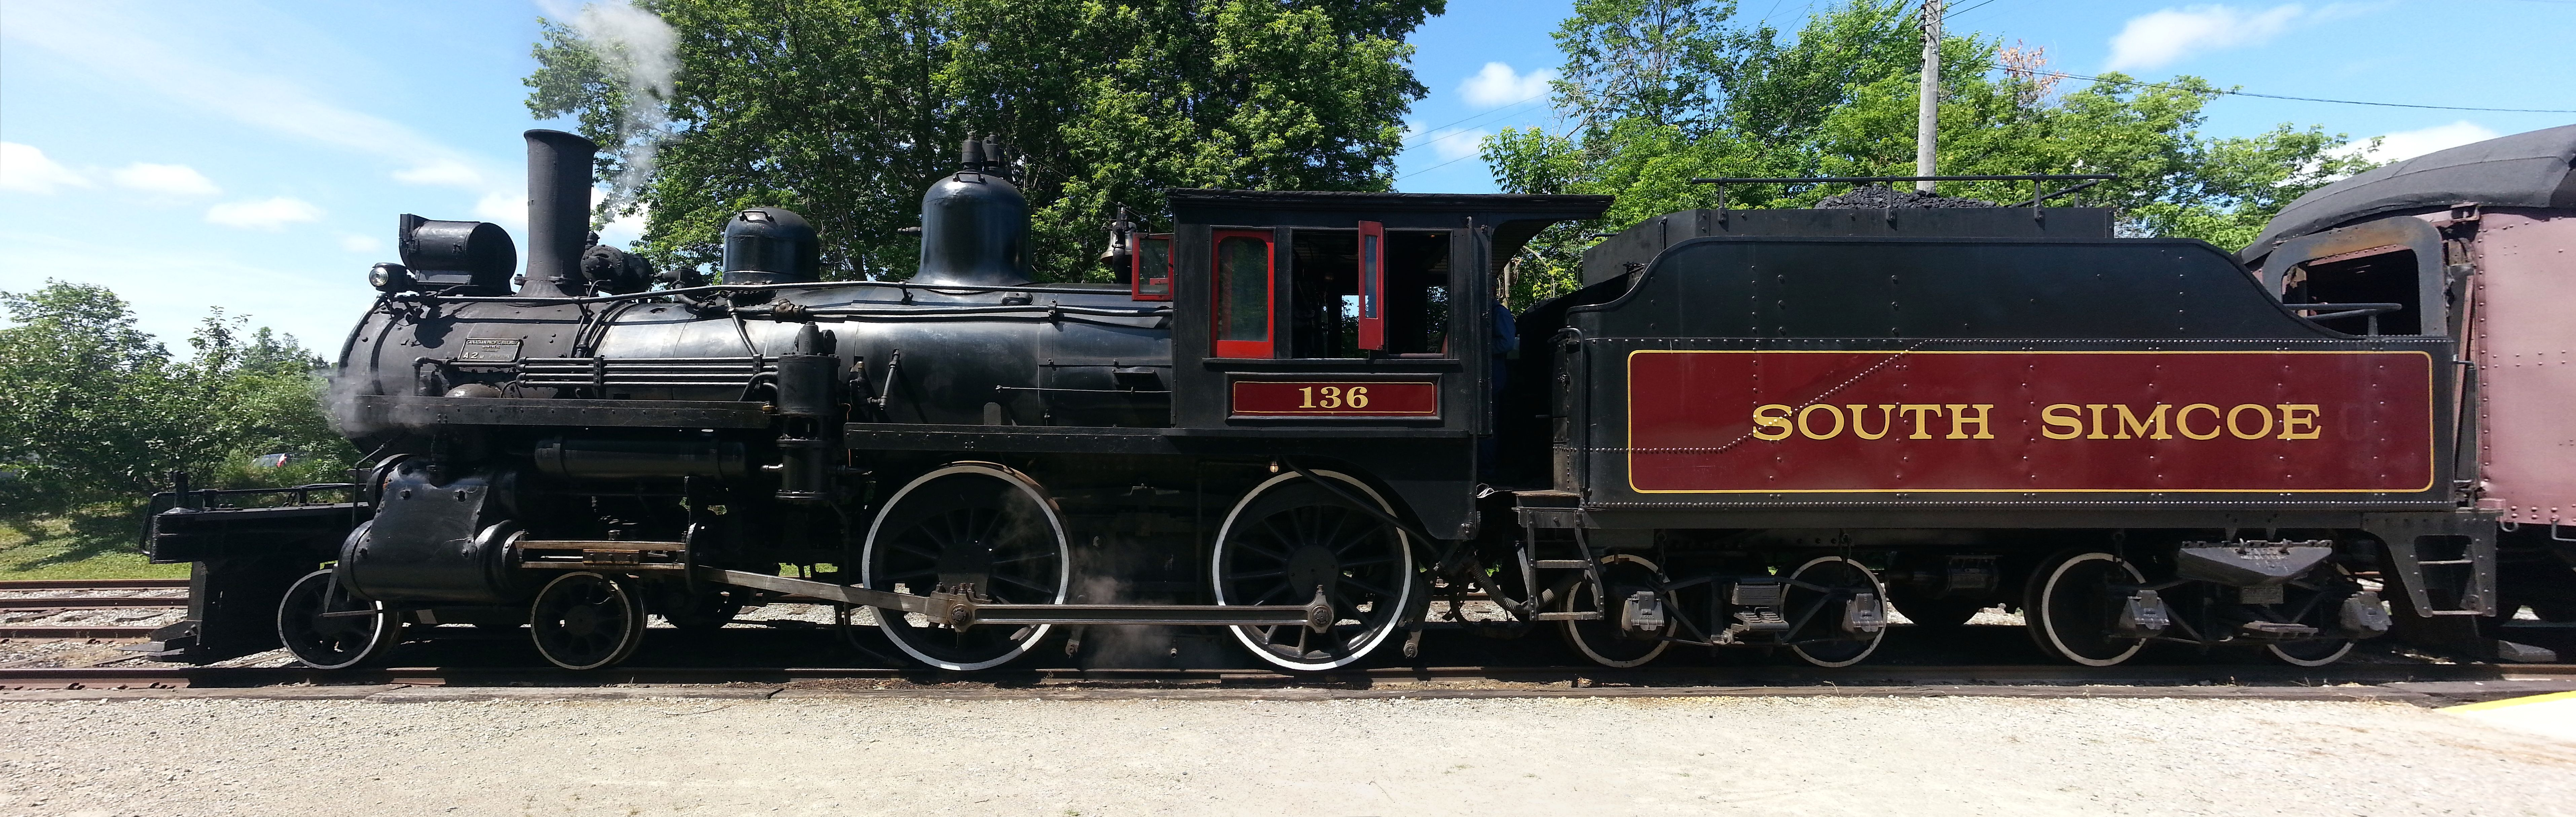 Steam Engine Train Side View